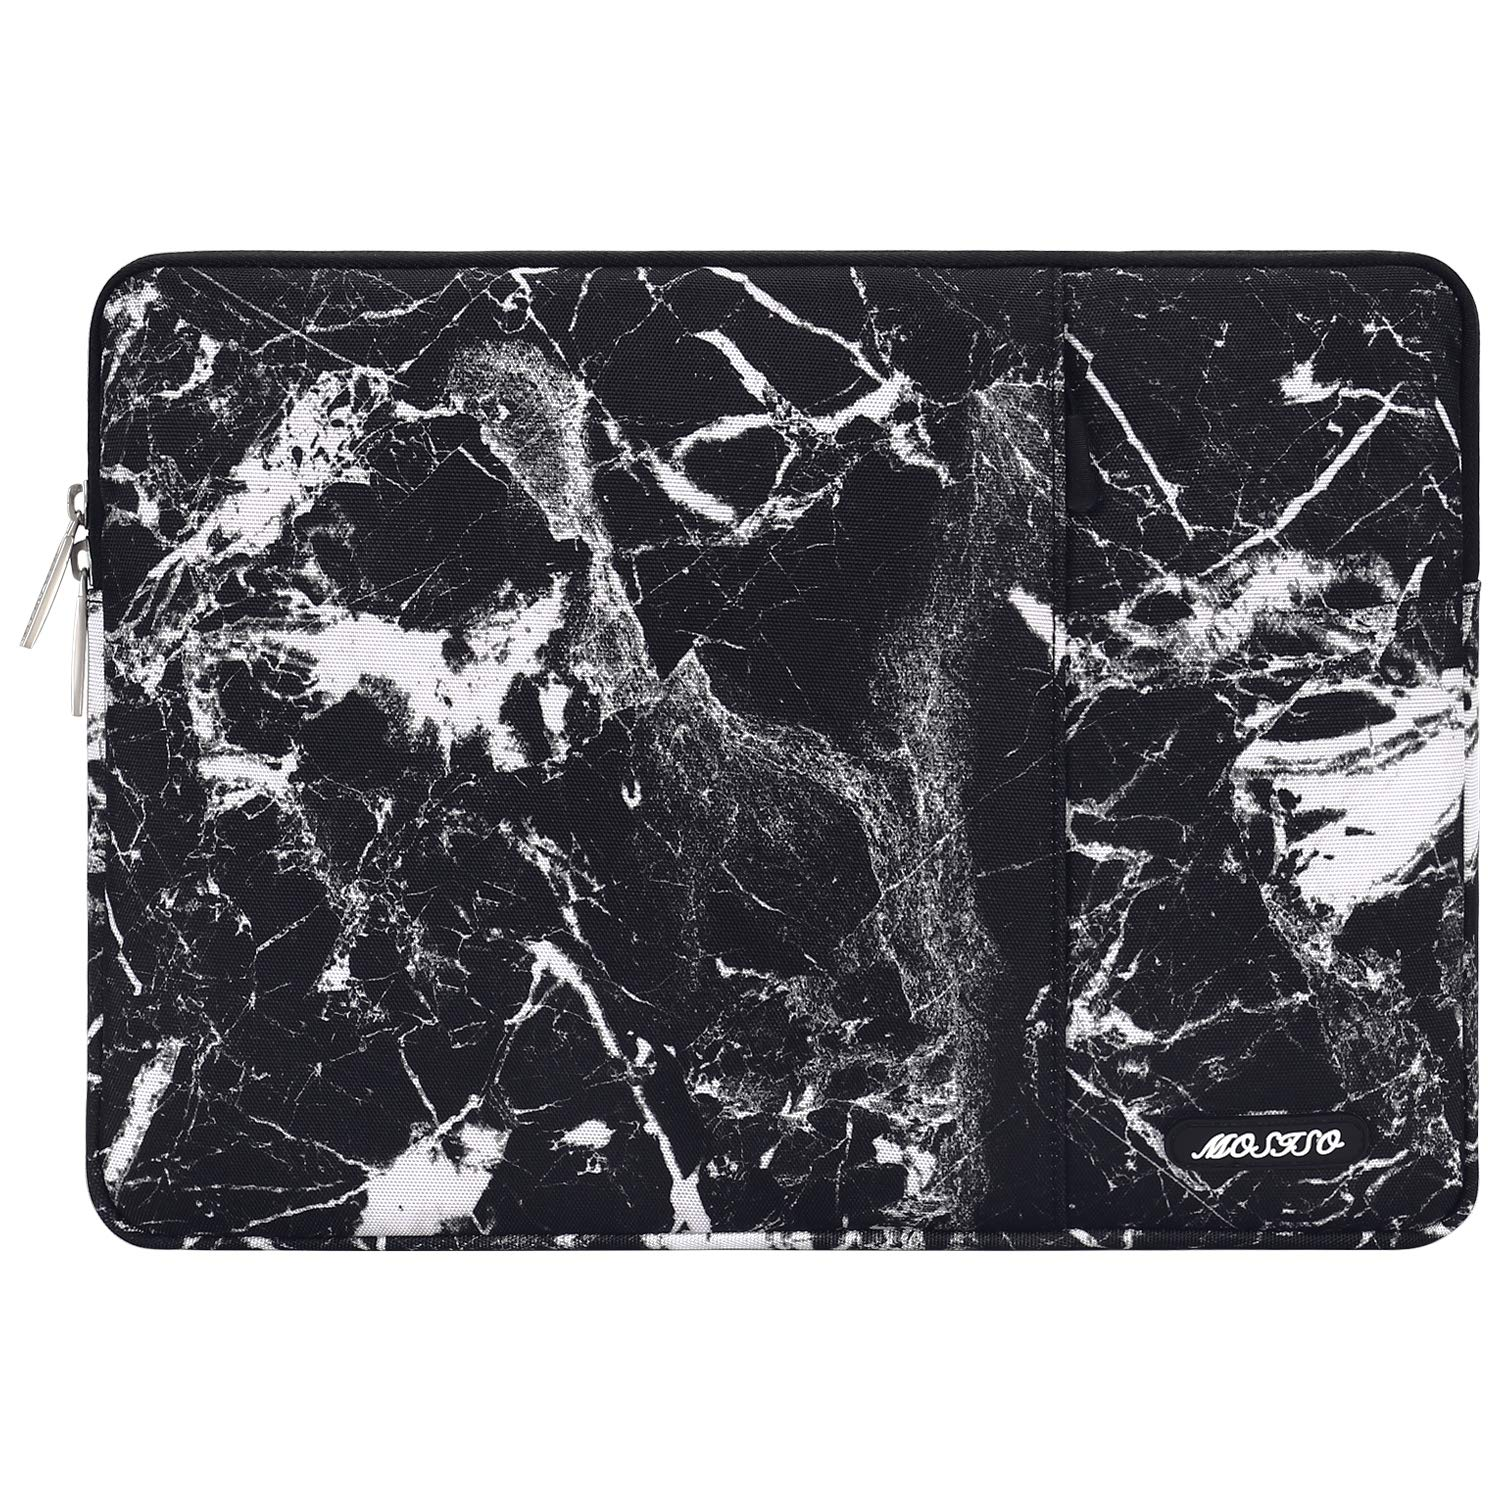 MOSISO Laptop Sleeve Bag Compatible 13-13.3 Inch MacBook Pro, MacBook Air, Notebook Computer, Vertical Style Water Repellent Polyester Protective Case Cover with Pocket, Black Marble